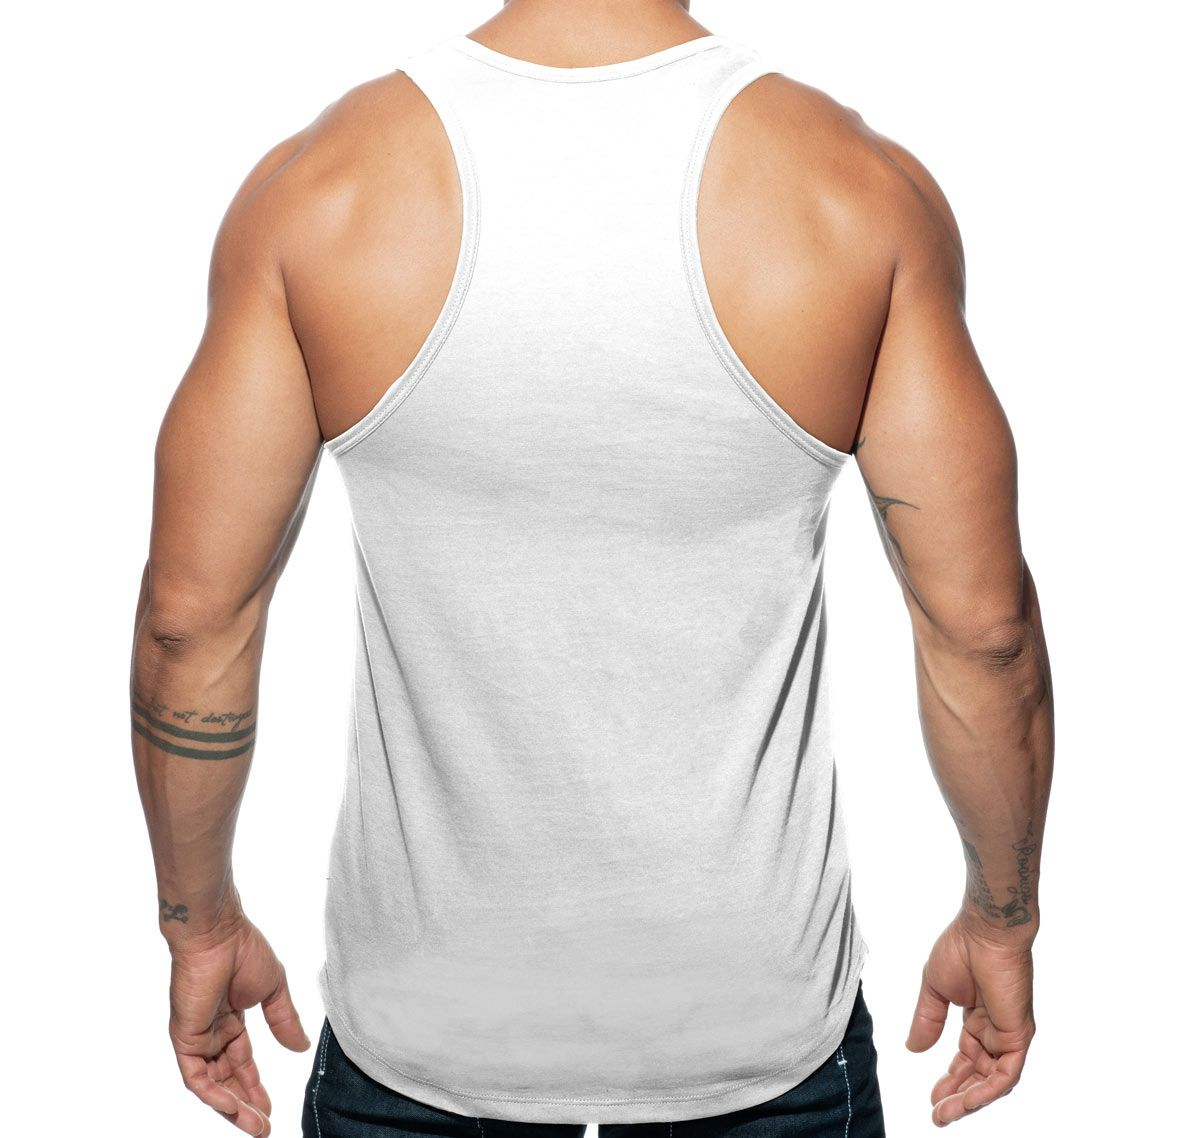 Addicted Sportshirt MILITARY TANK TOP AD611, weiß